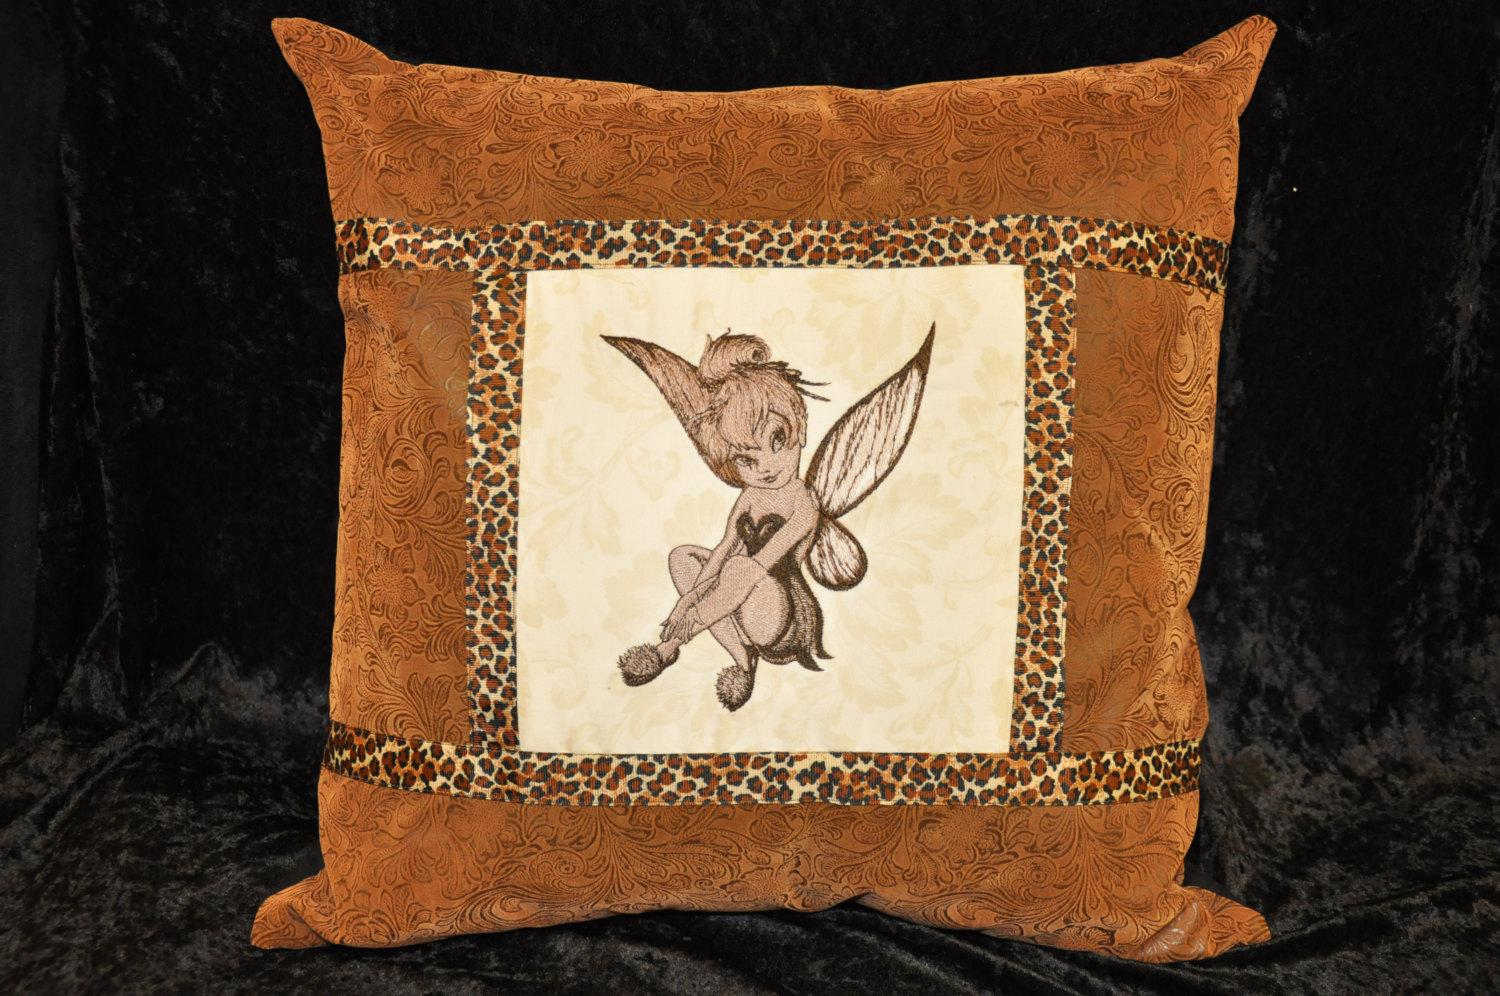 A pillow with Tinker Bell sitting embroidery design